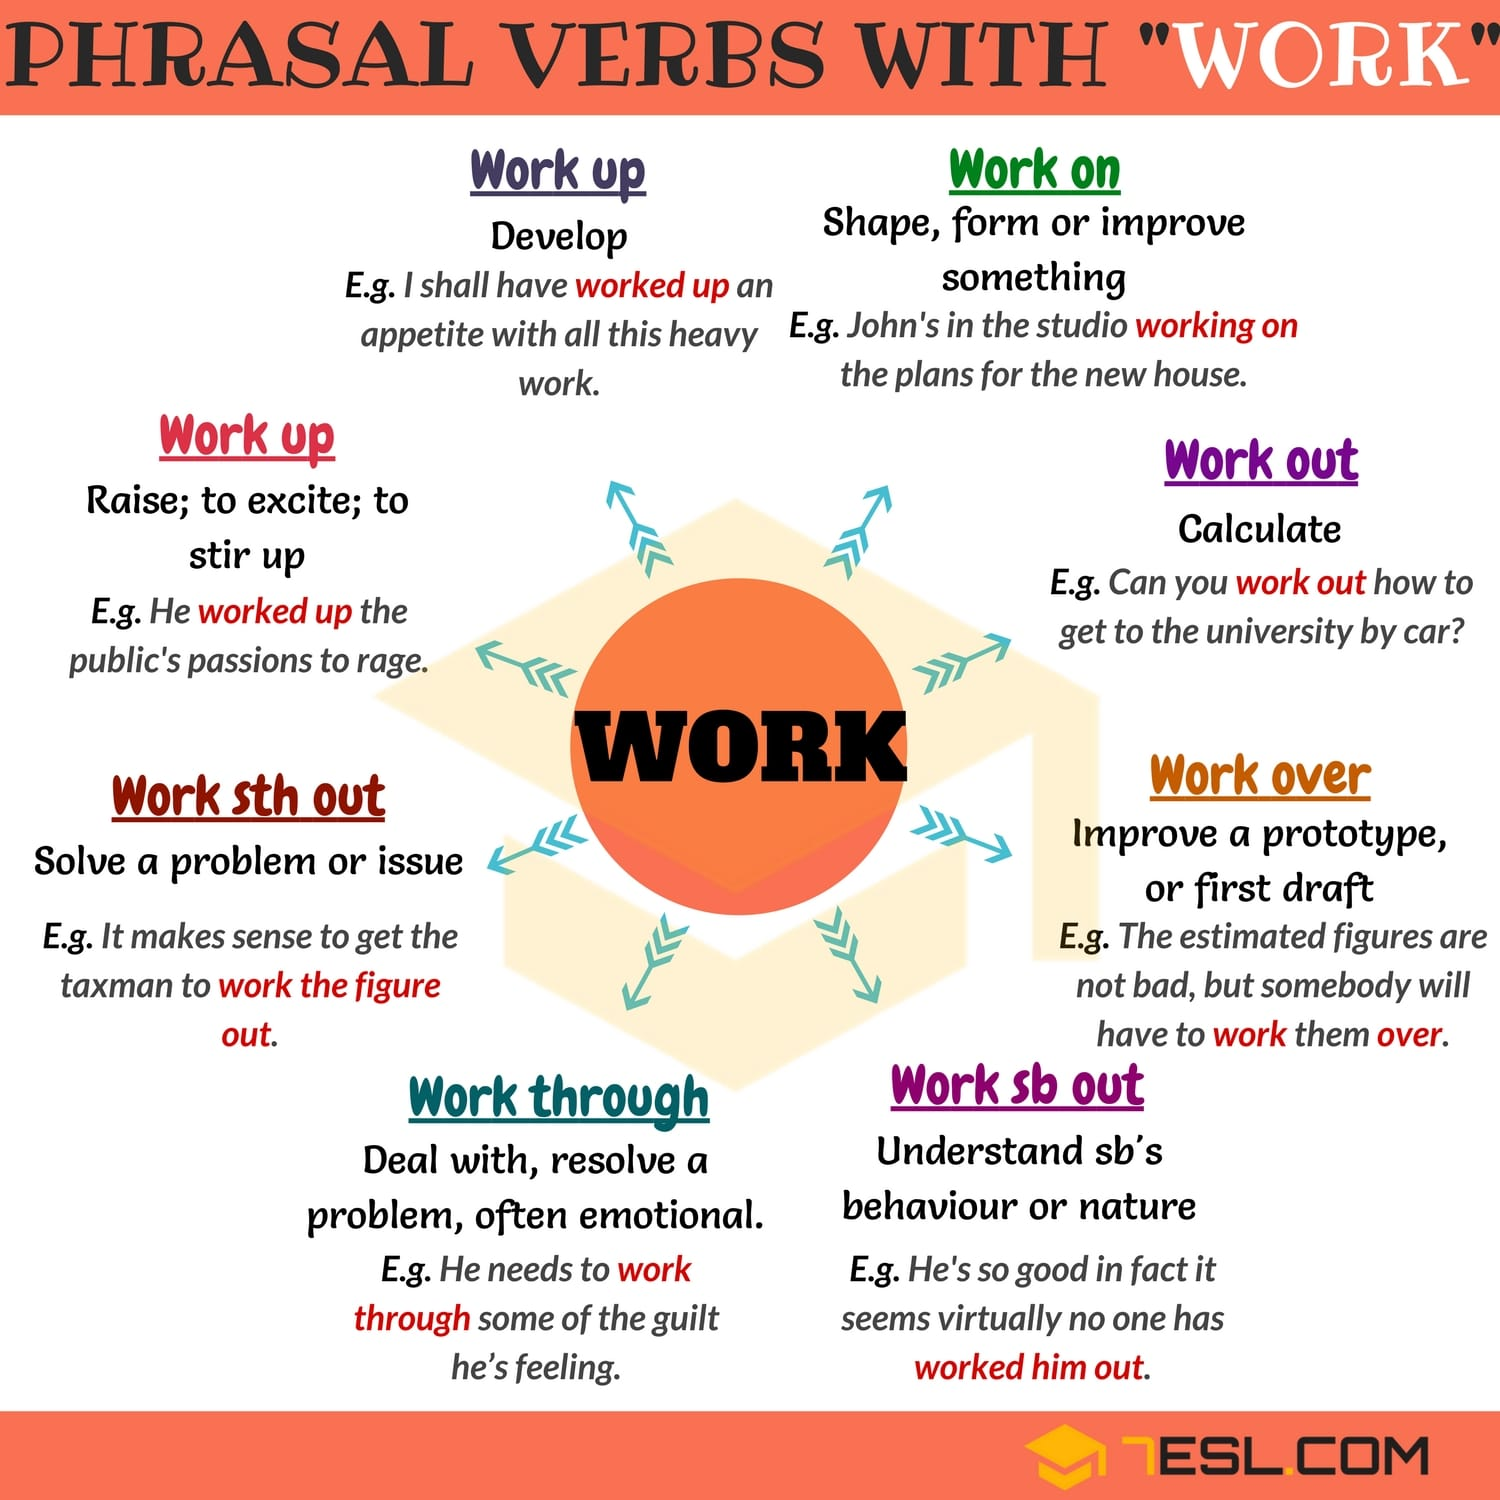 Commonly Used Phrasal Verbs with WORK